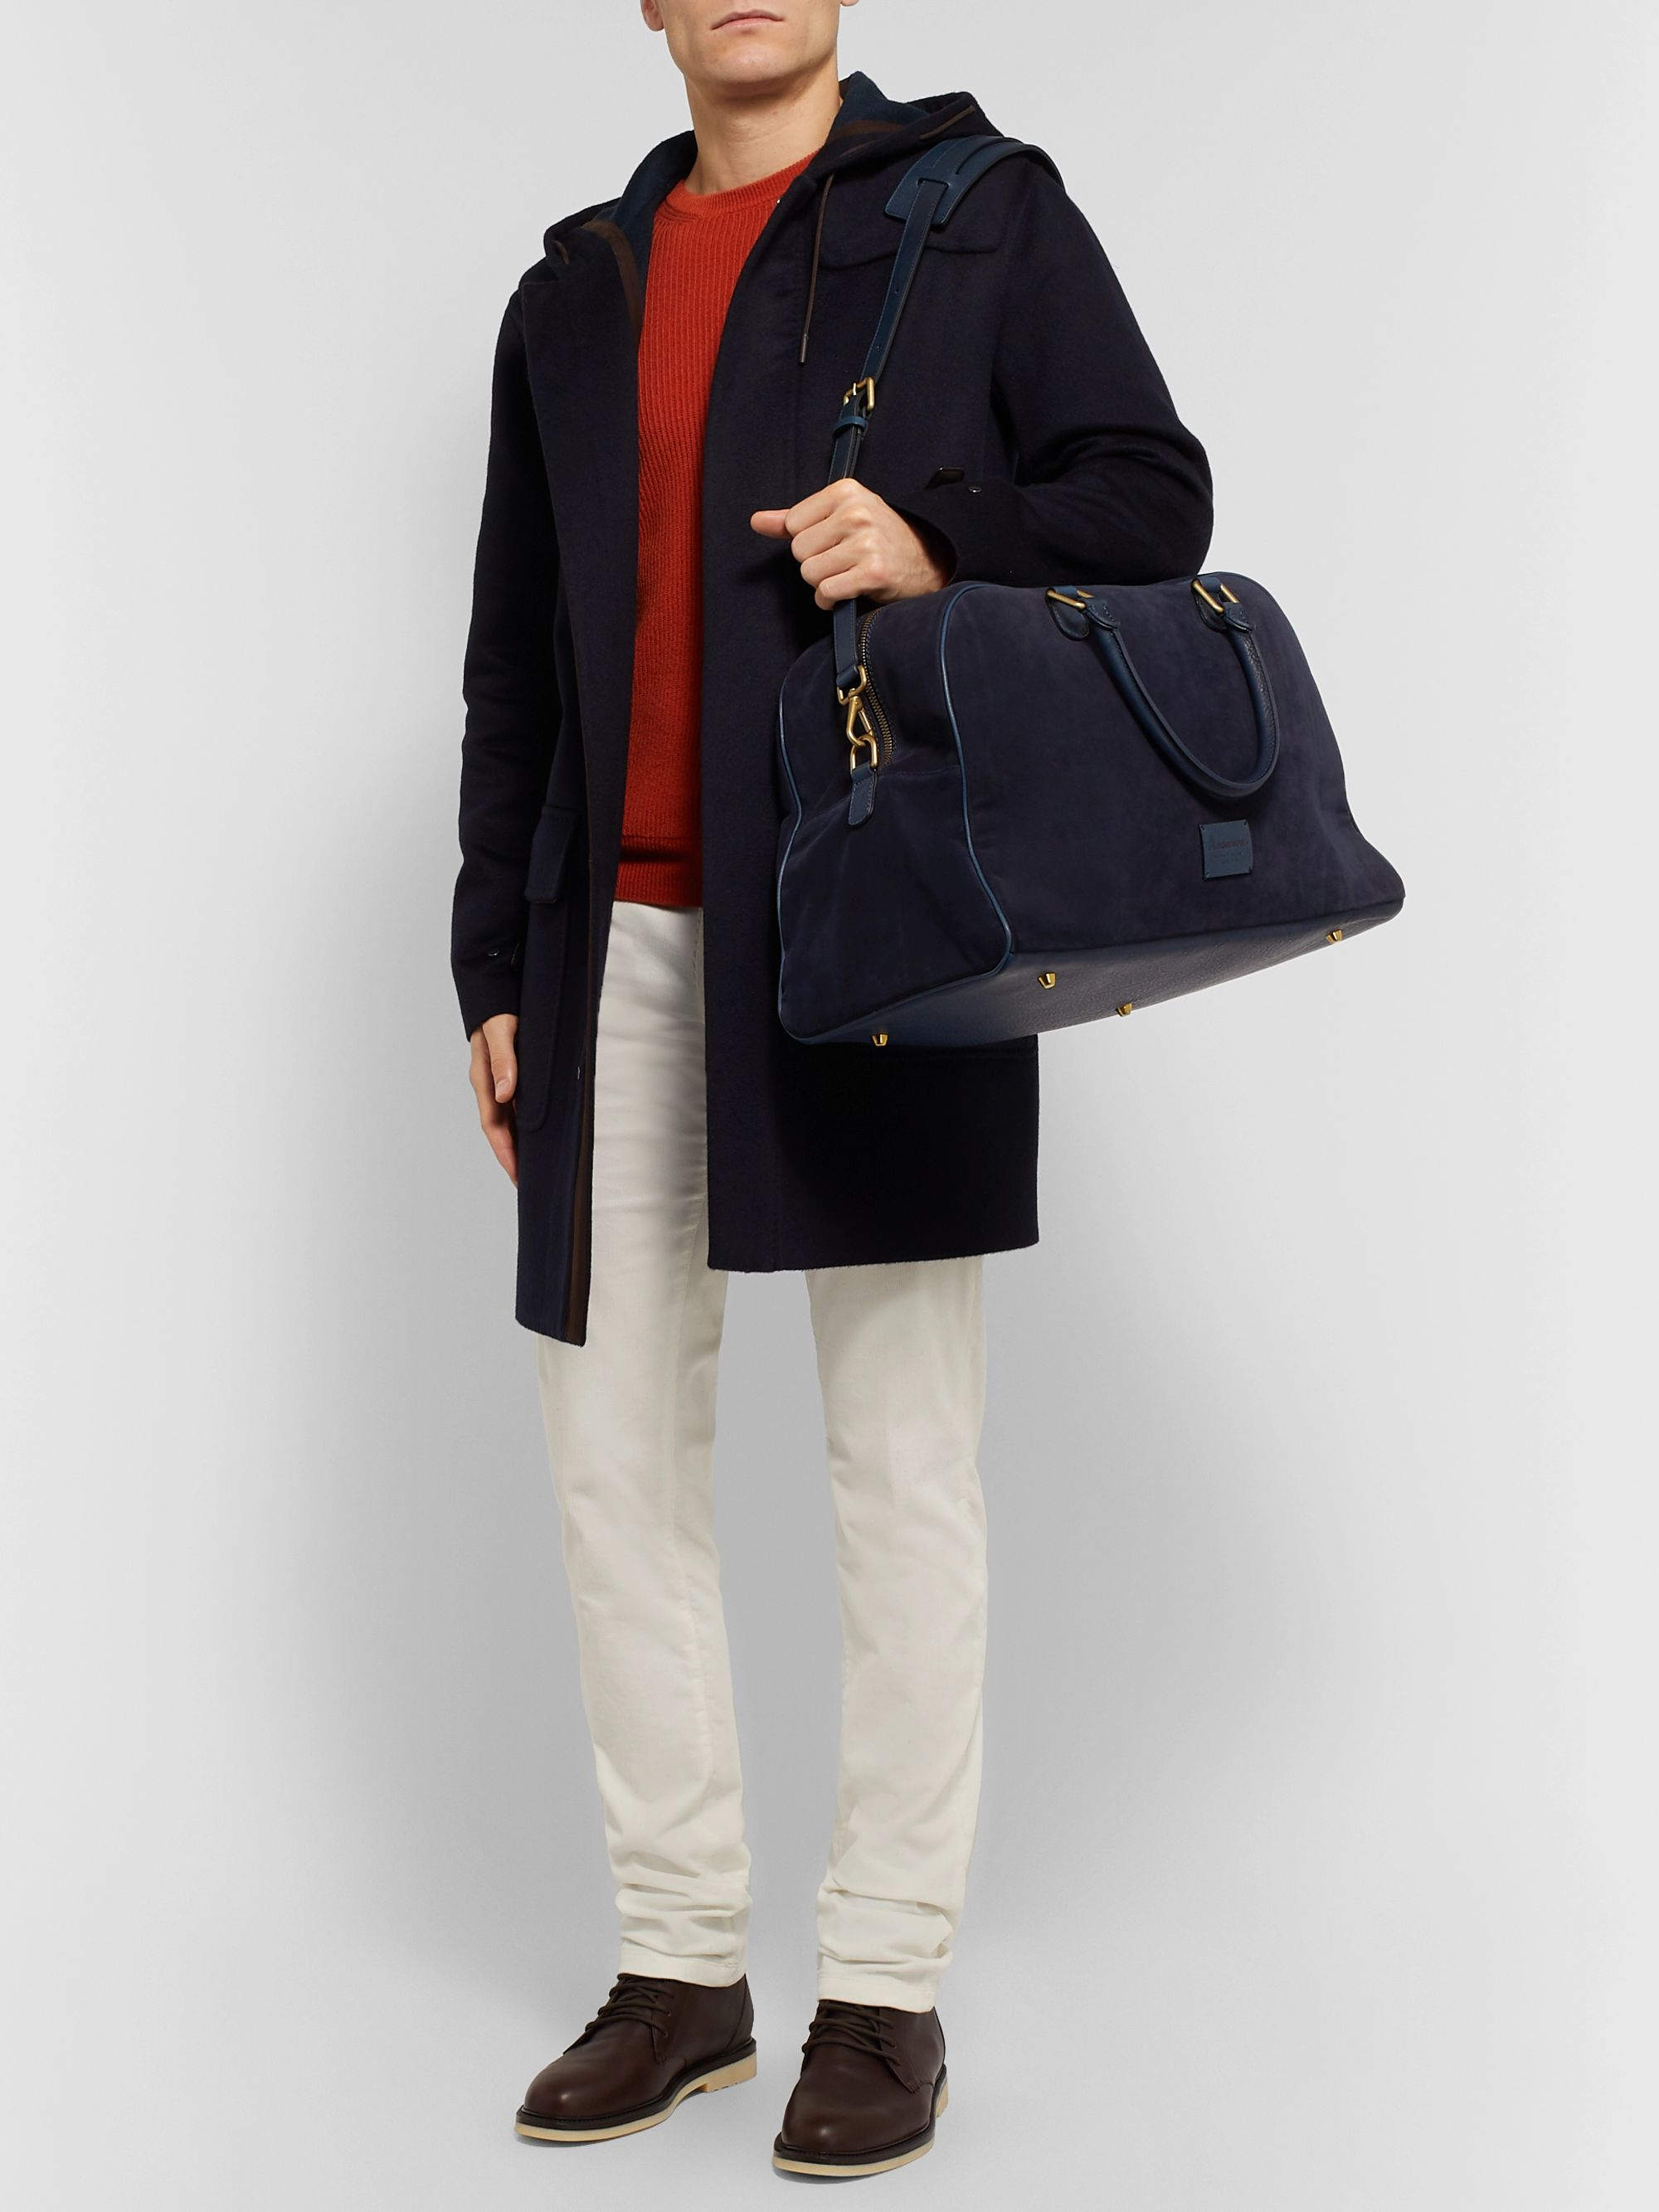 Anderson's Leather-Trimmed Suede Holdall